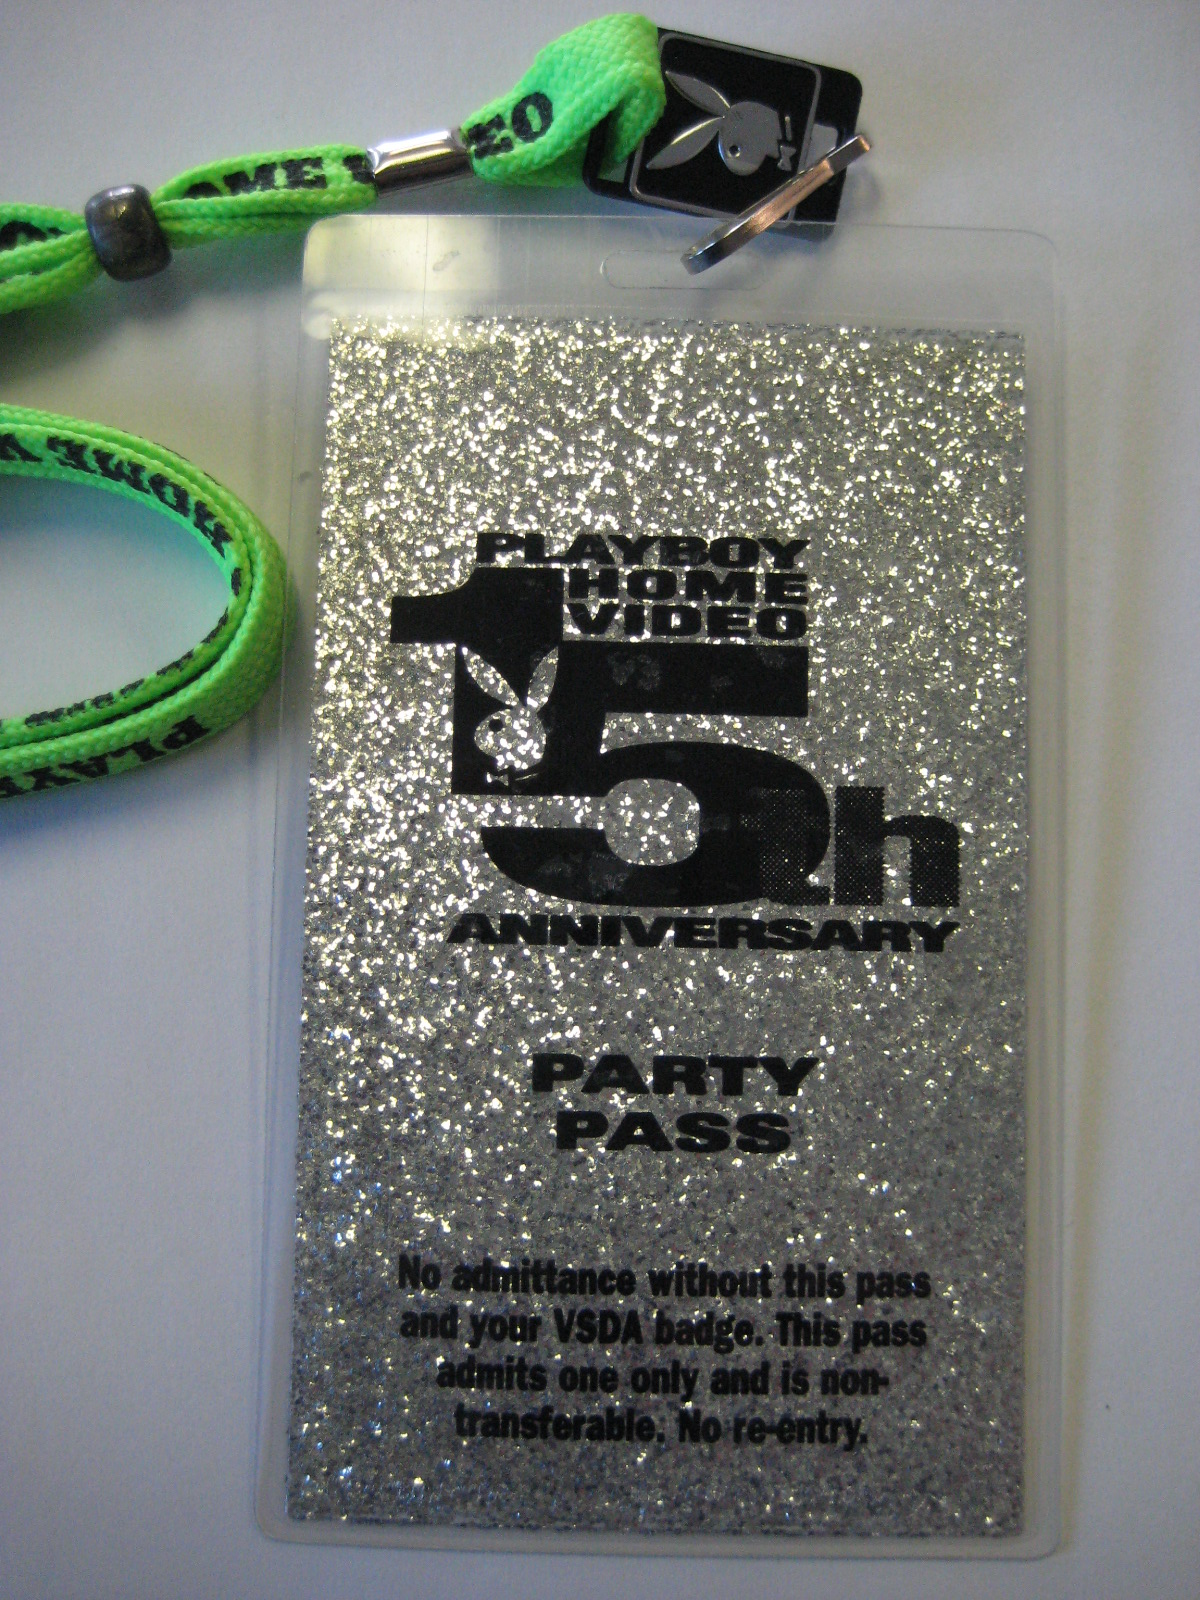 Playboy Home Video 15th Anniversary Party Pass